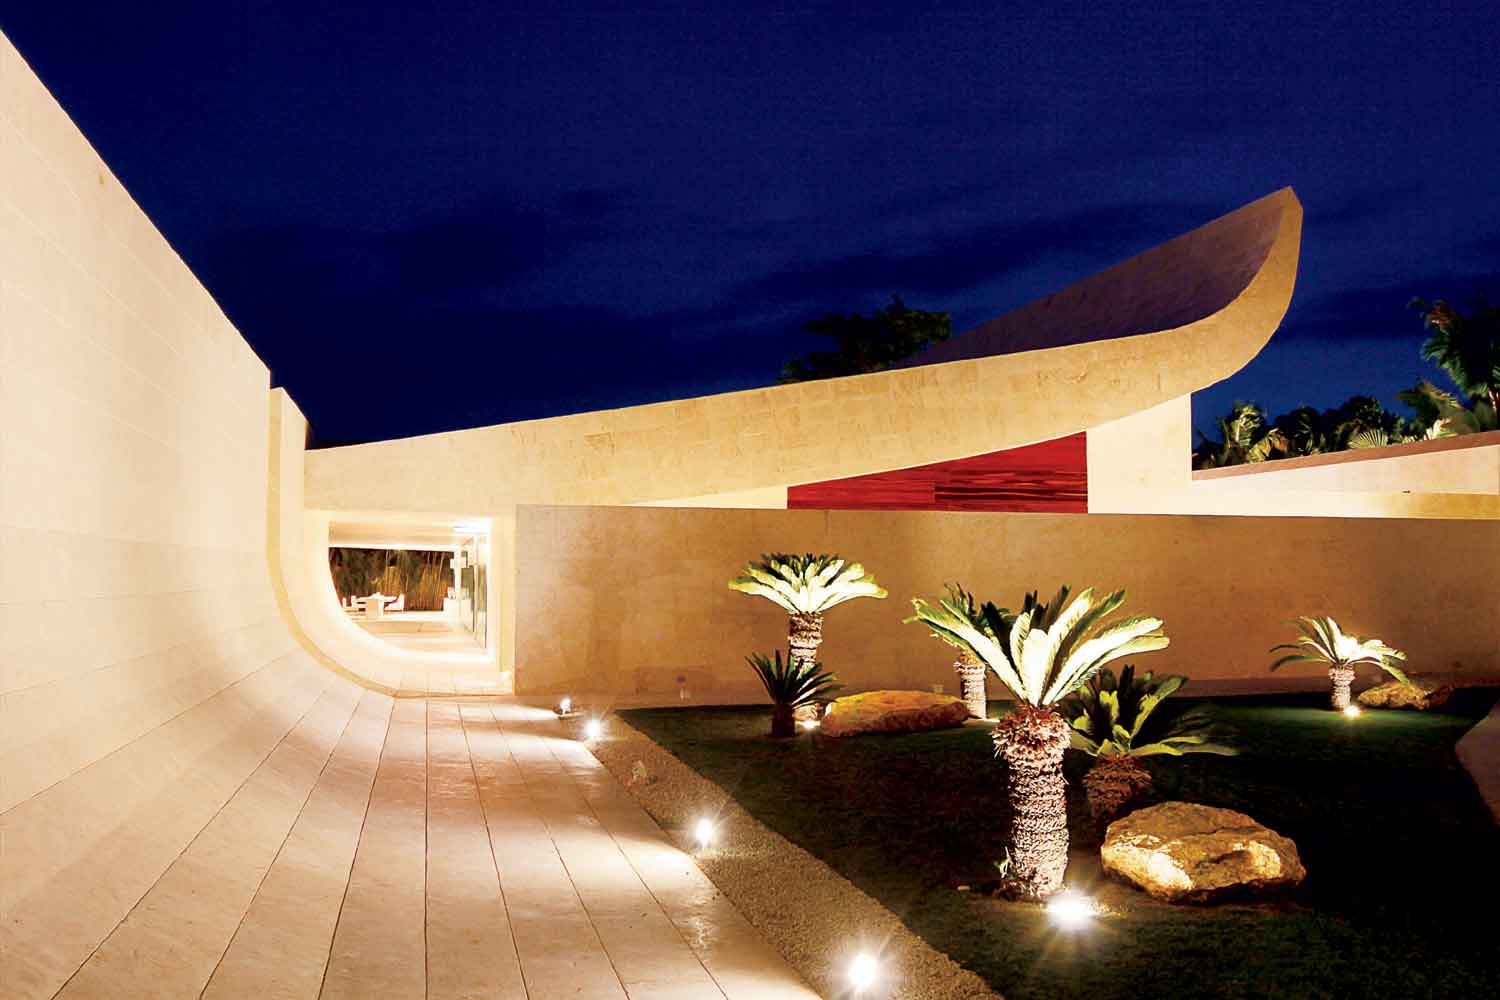 <b>Casa de Campo, Dominican Republic</b><br/><i>6 Bedrooms, 18,000 sq. ft.</i><br/>The Wave House at Punta Aguila